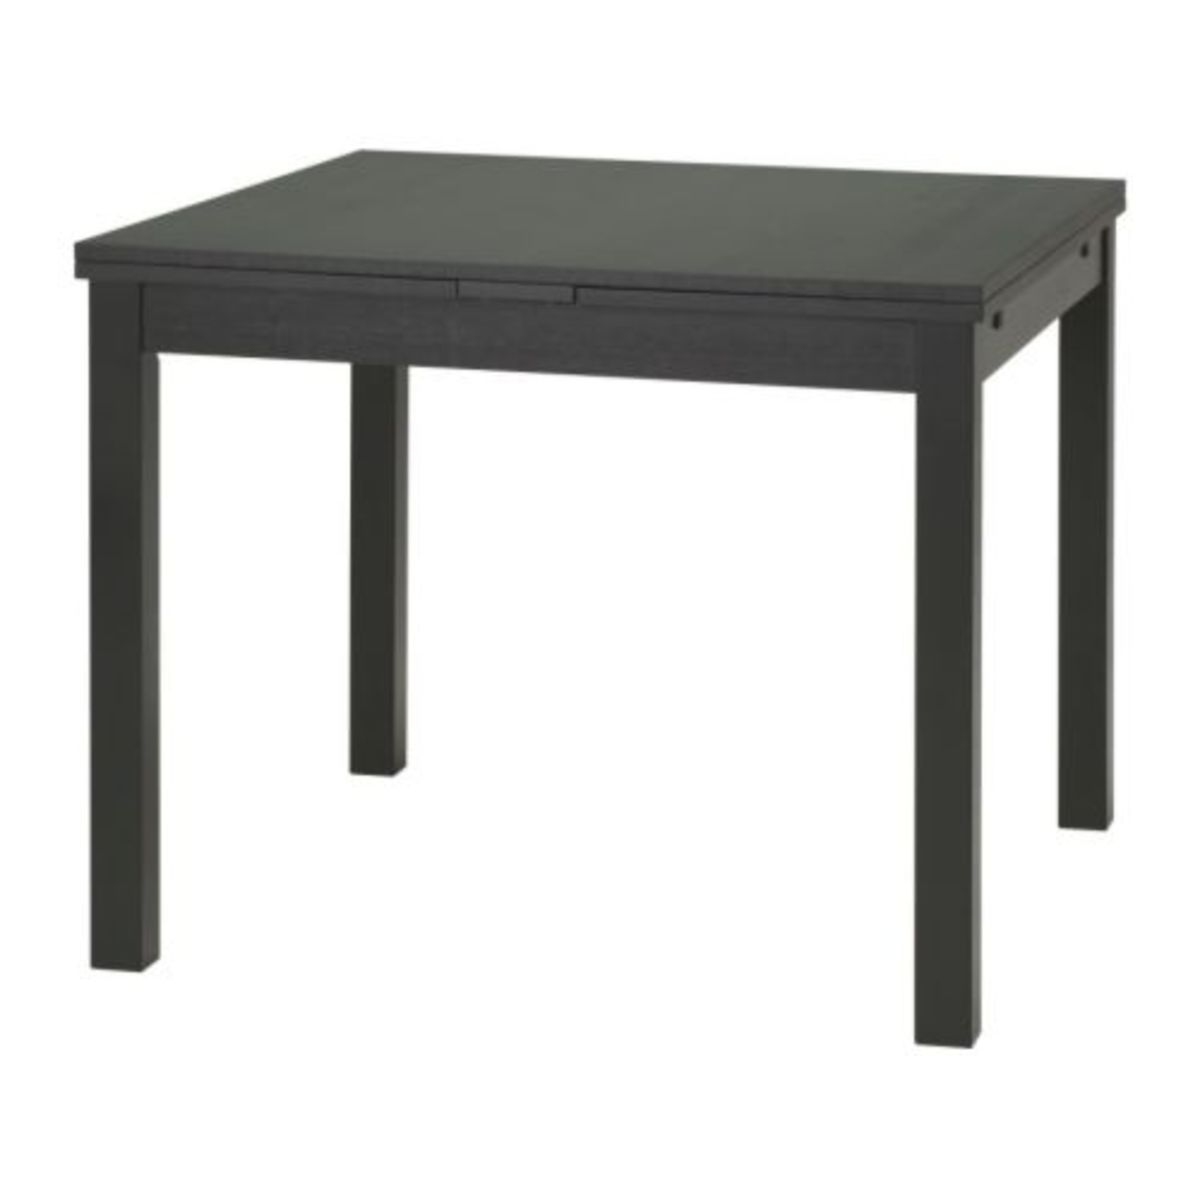 The IKEA Bjursta Table